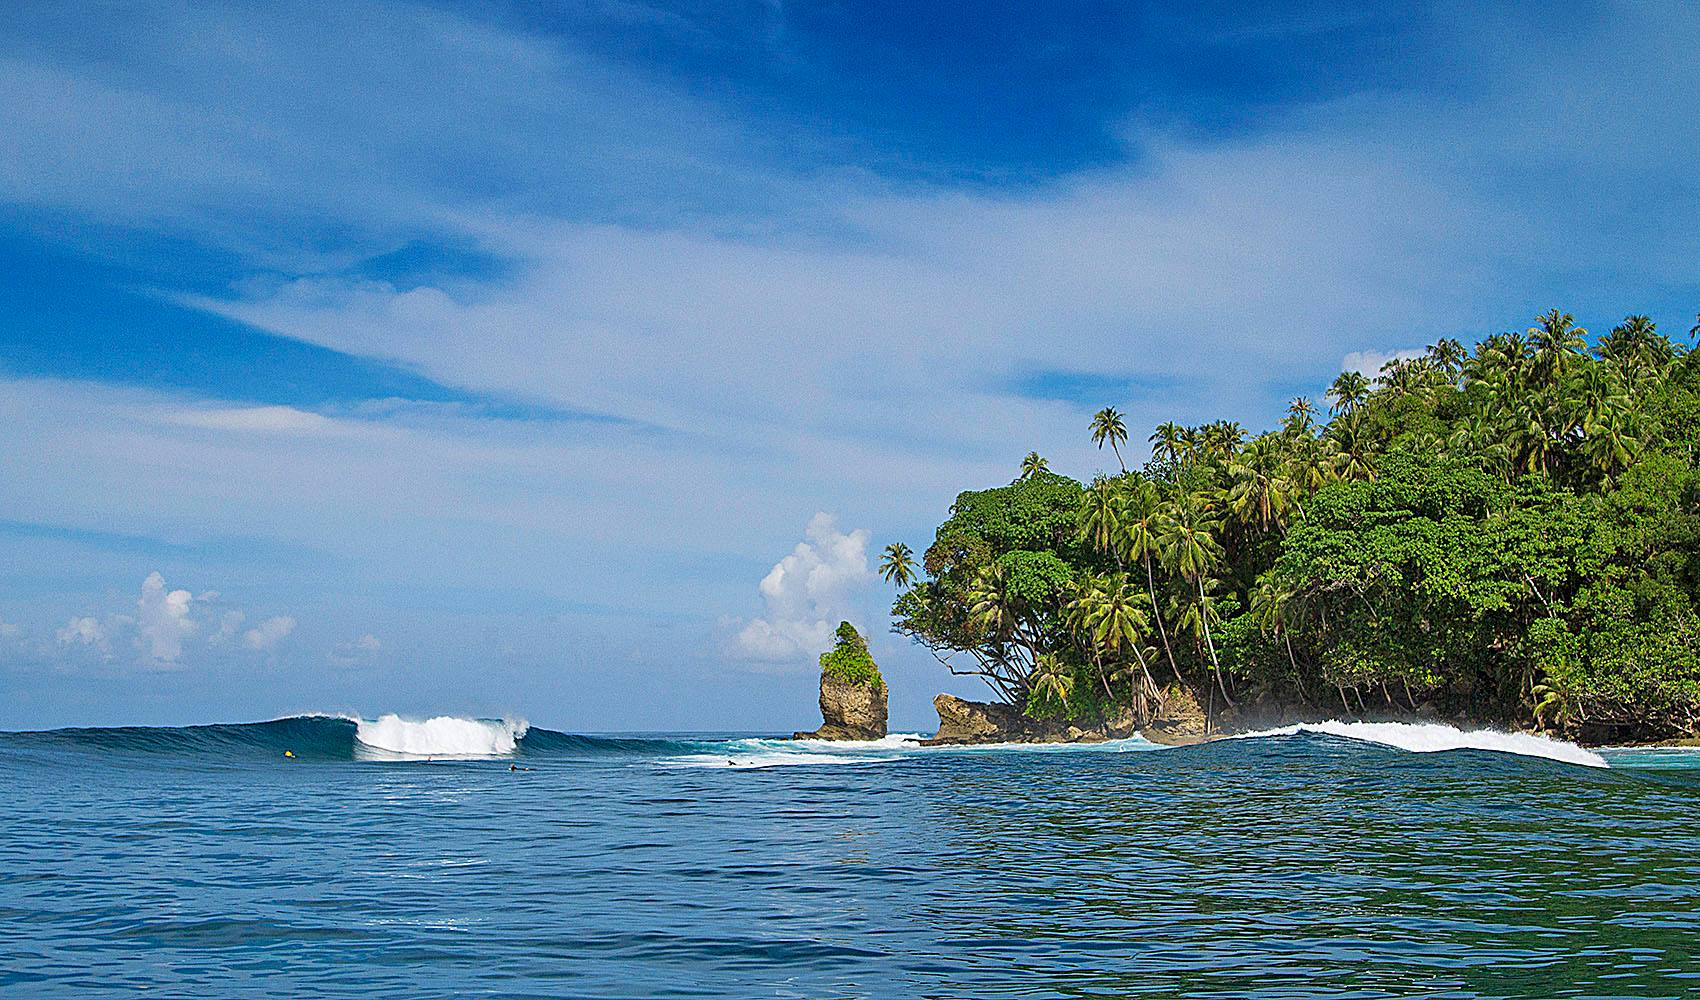 Telo_Island_Lodge_Surf_Indonesia_Pinnacles_Rock.jpg